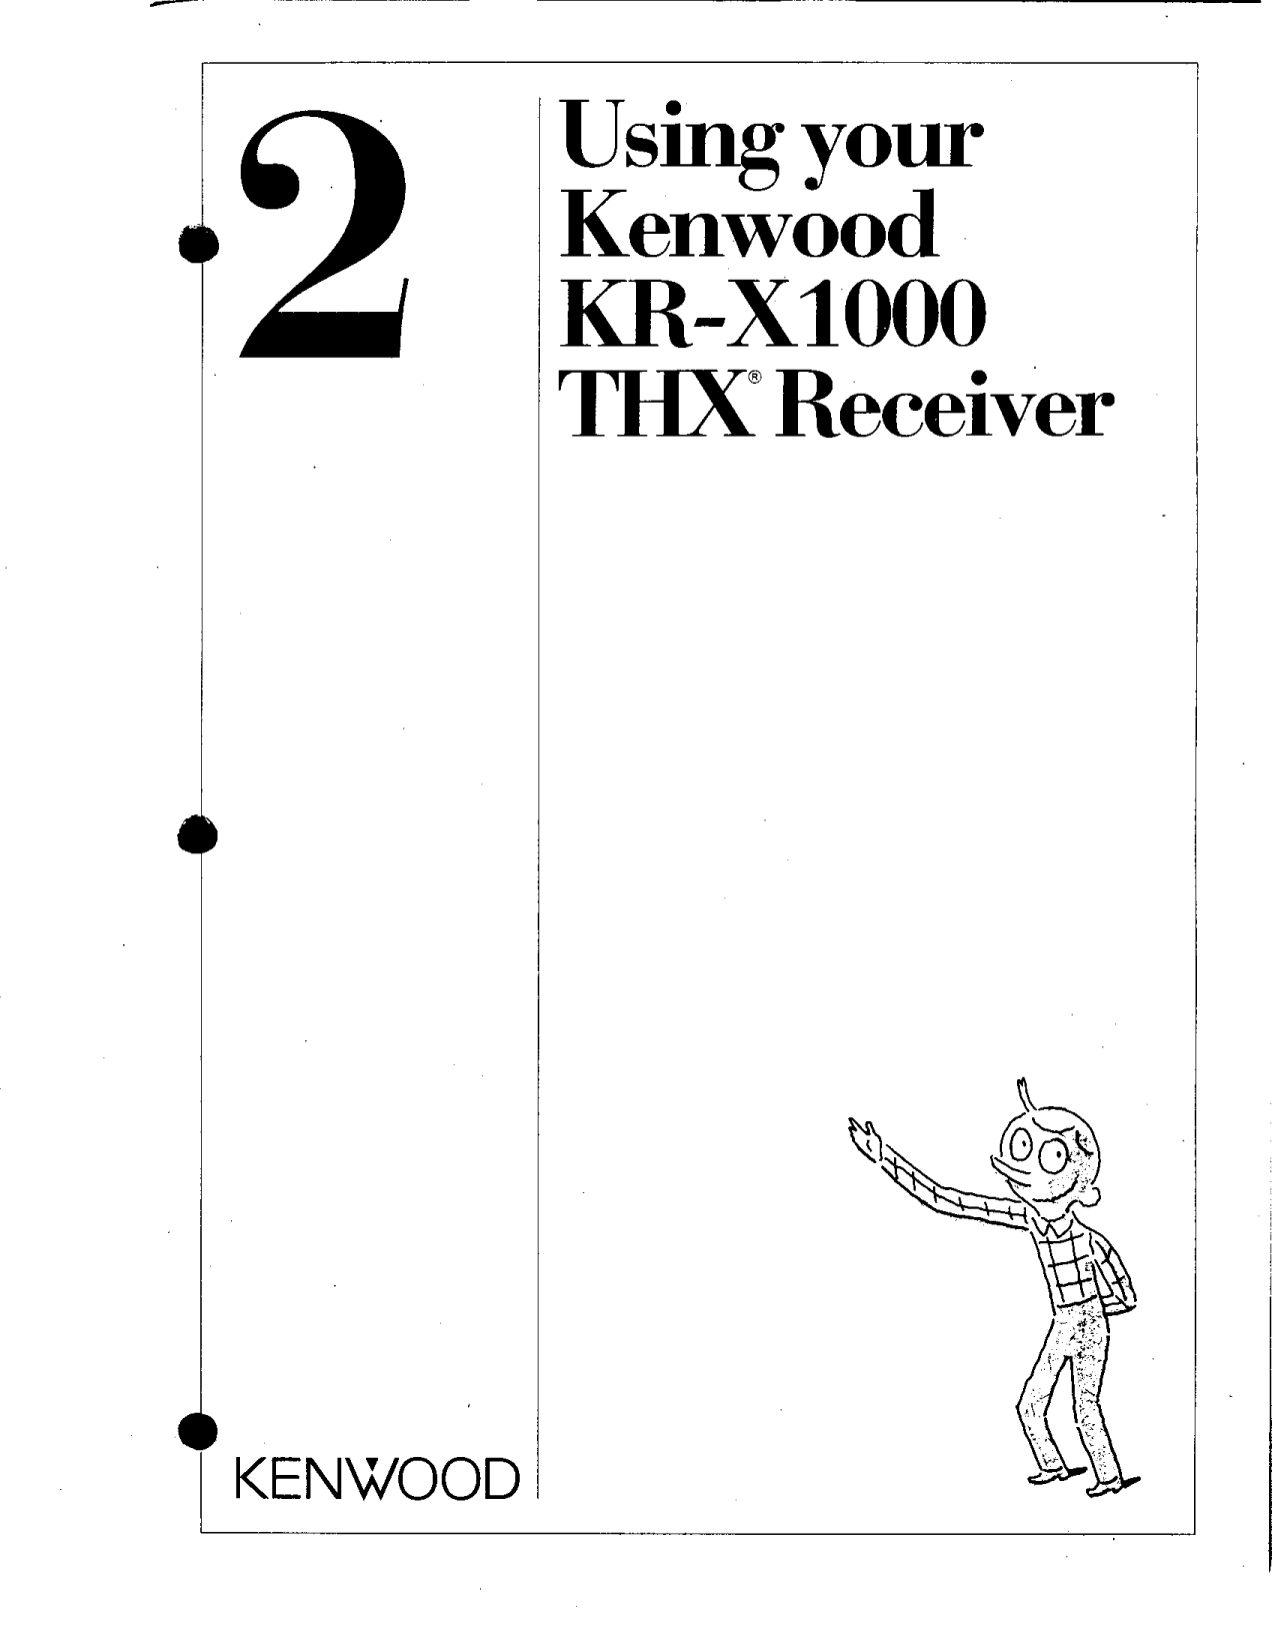 Download free pdf for Kenwood KR-X1000 Receiver manual